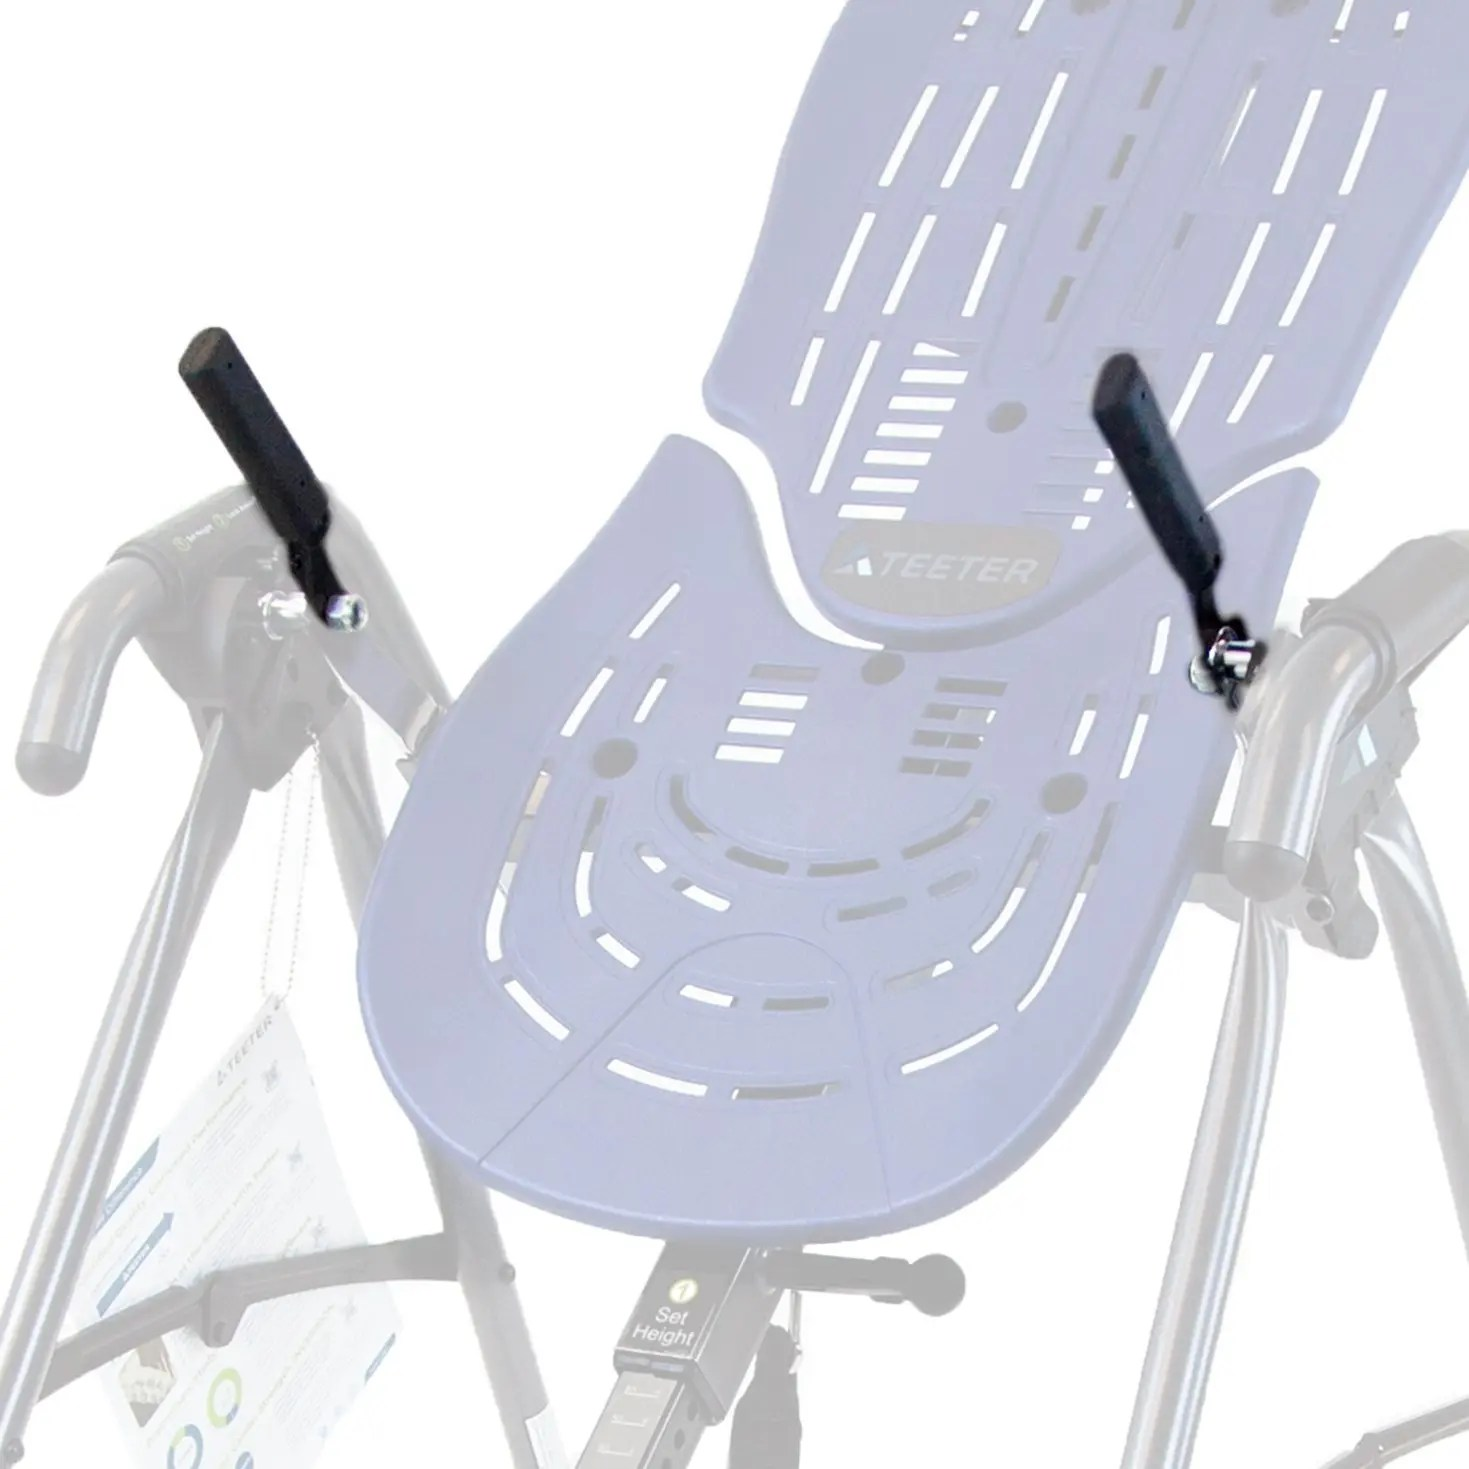 ez posture chair folding covers target teeter stretch traction handles body massage shop